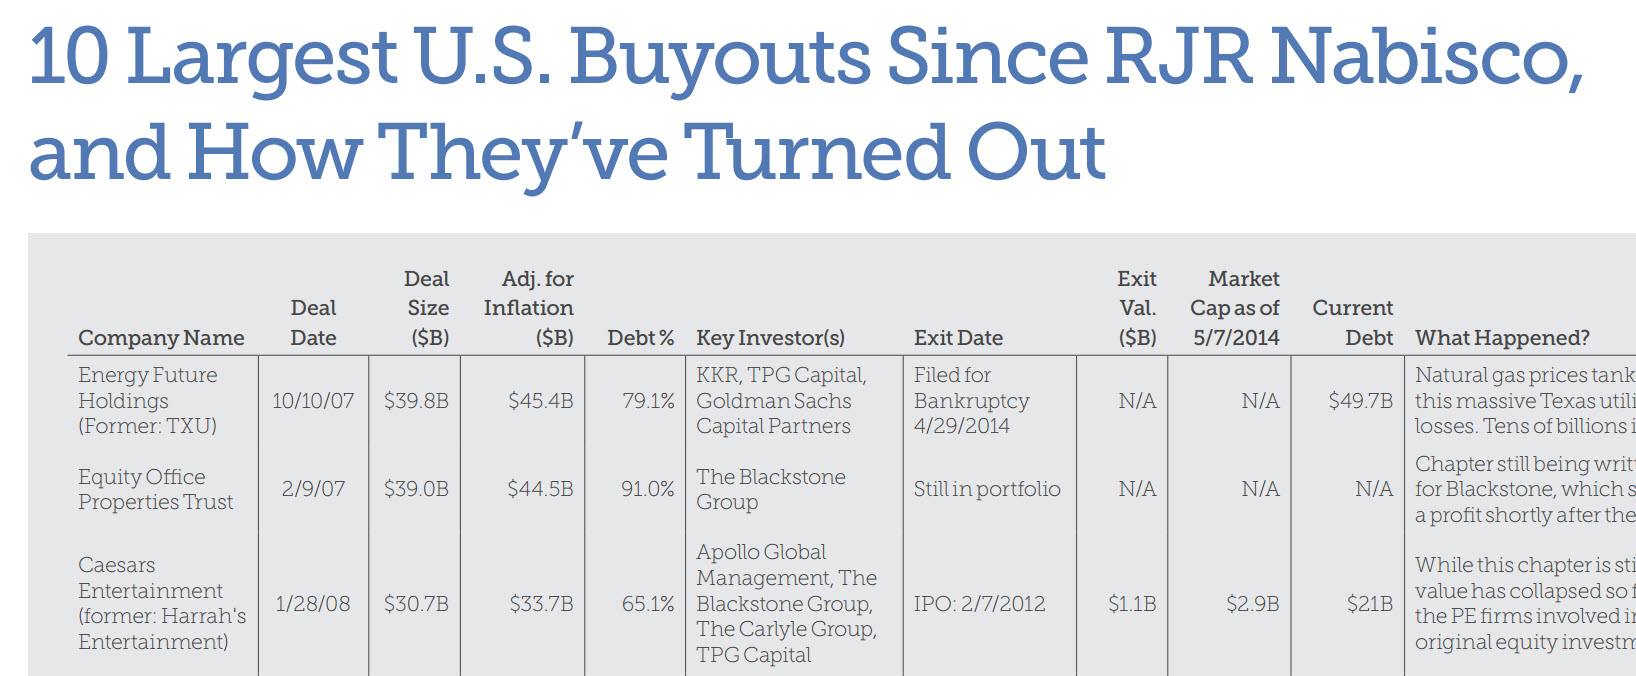 The 10 largest U.S. buyouts since RJR Nabisco. See the full graphic by clicking the image, or by going to the bottom of the article. | Source: PitchBook